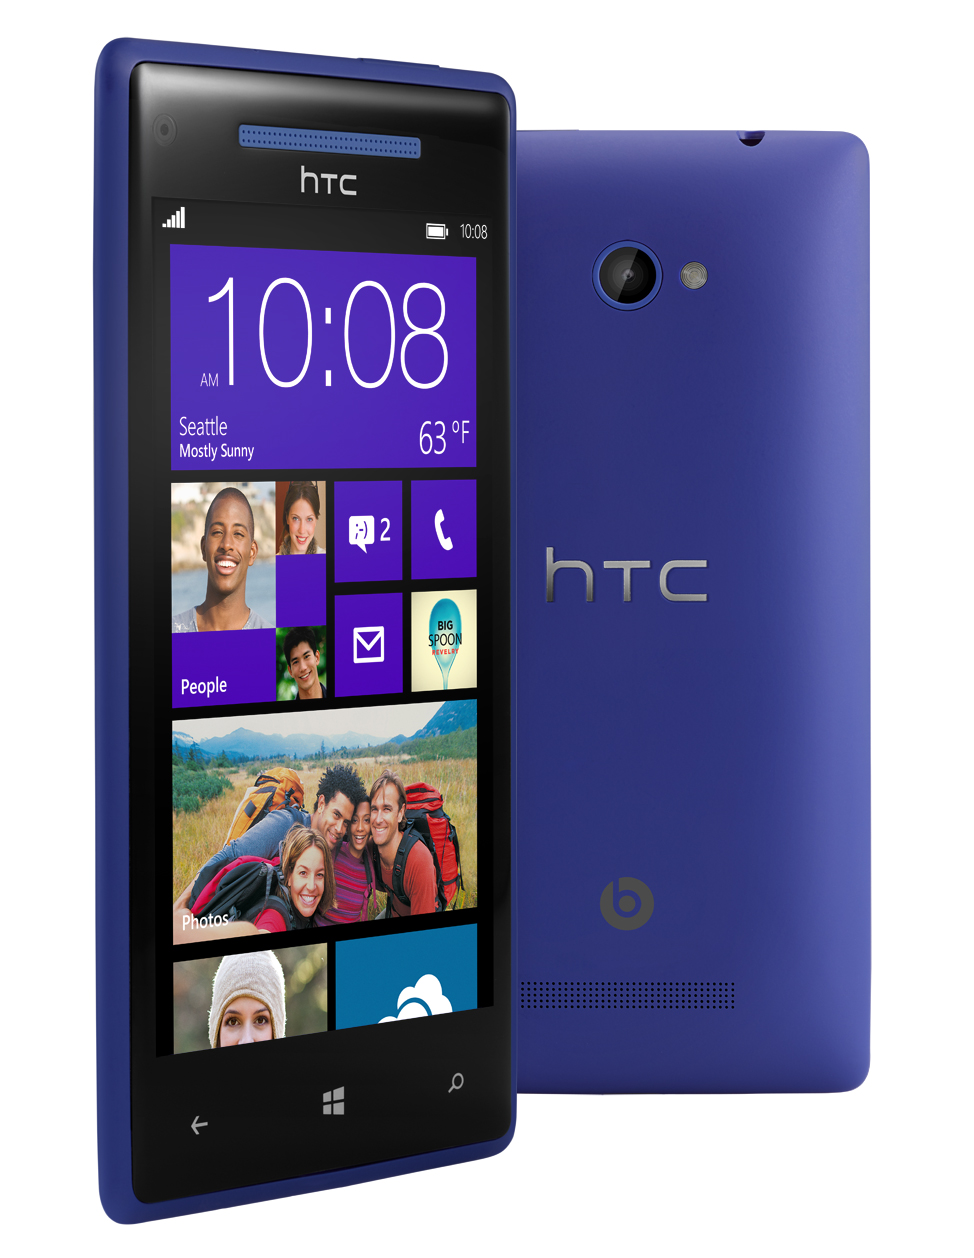 Windows phone 8x nfc wifi blue 4g lte phone verizon for Window 4g phone